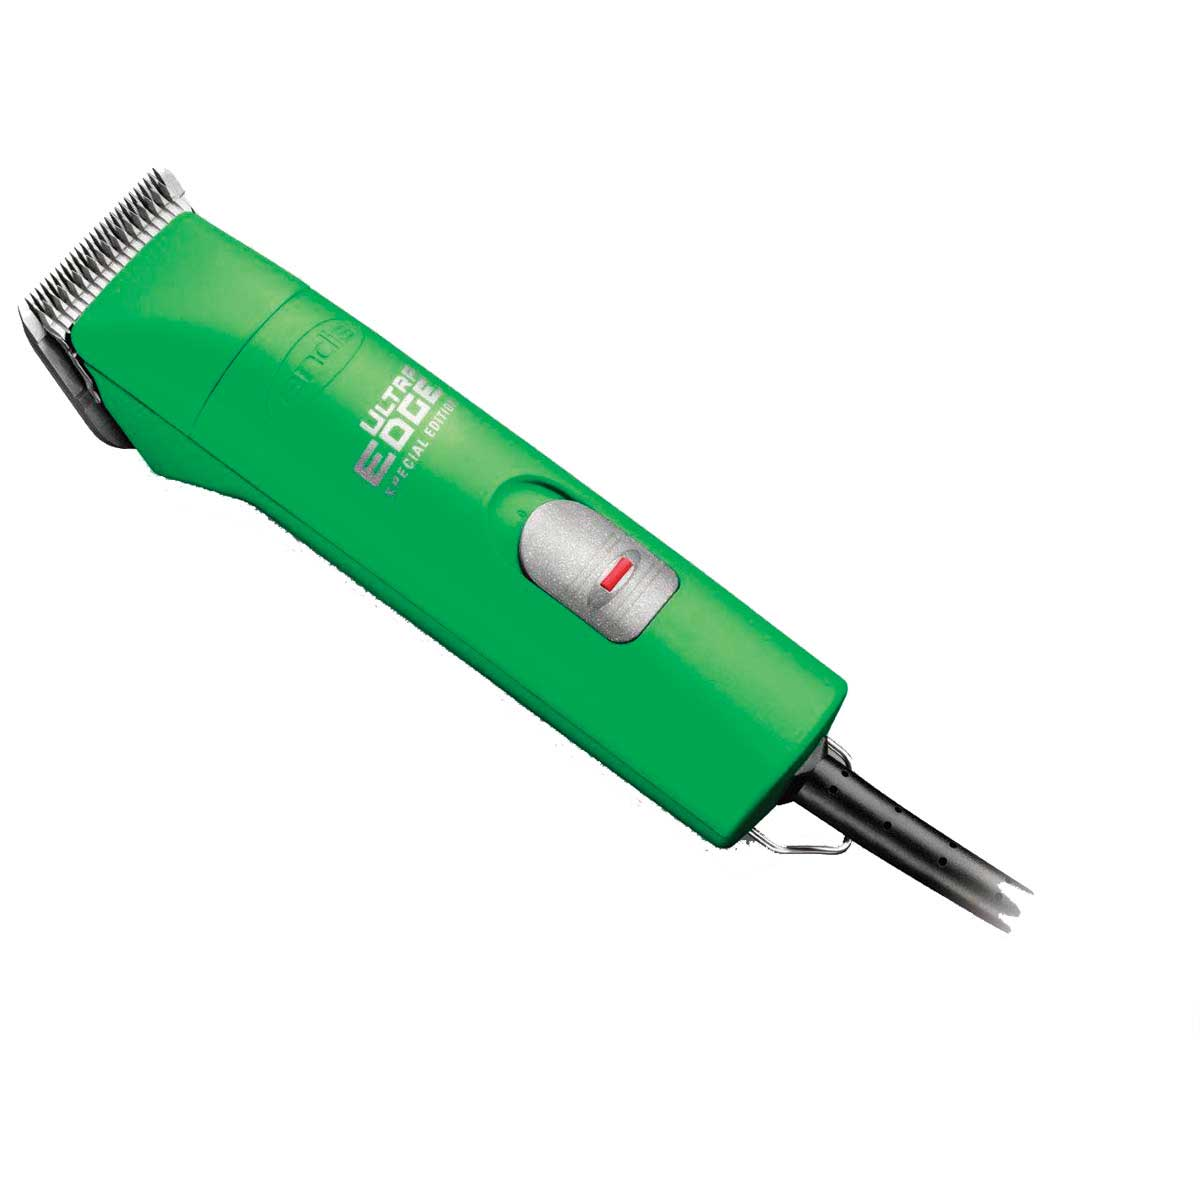 Andis AGC Super 2-Speed Clipper with #10 Blade Lime Green Special Edition at Ryan's Pet Supplies